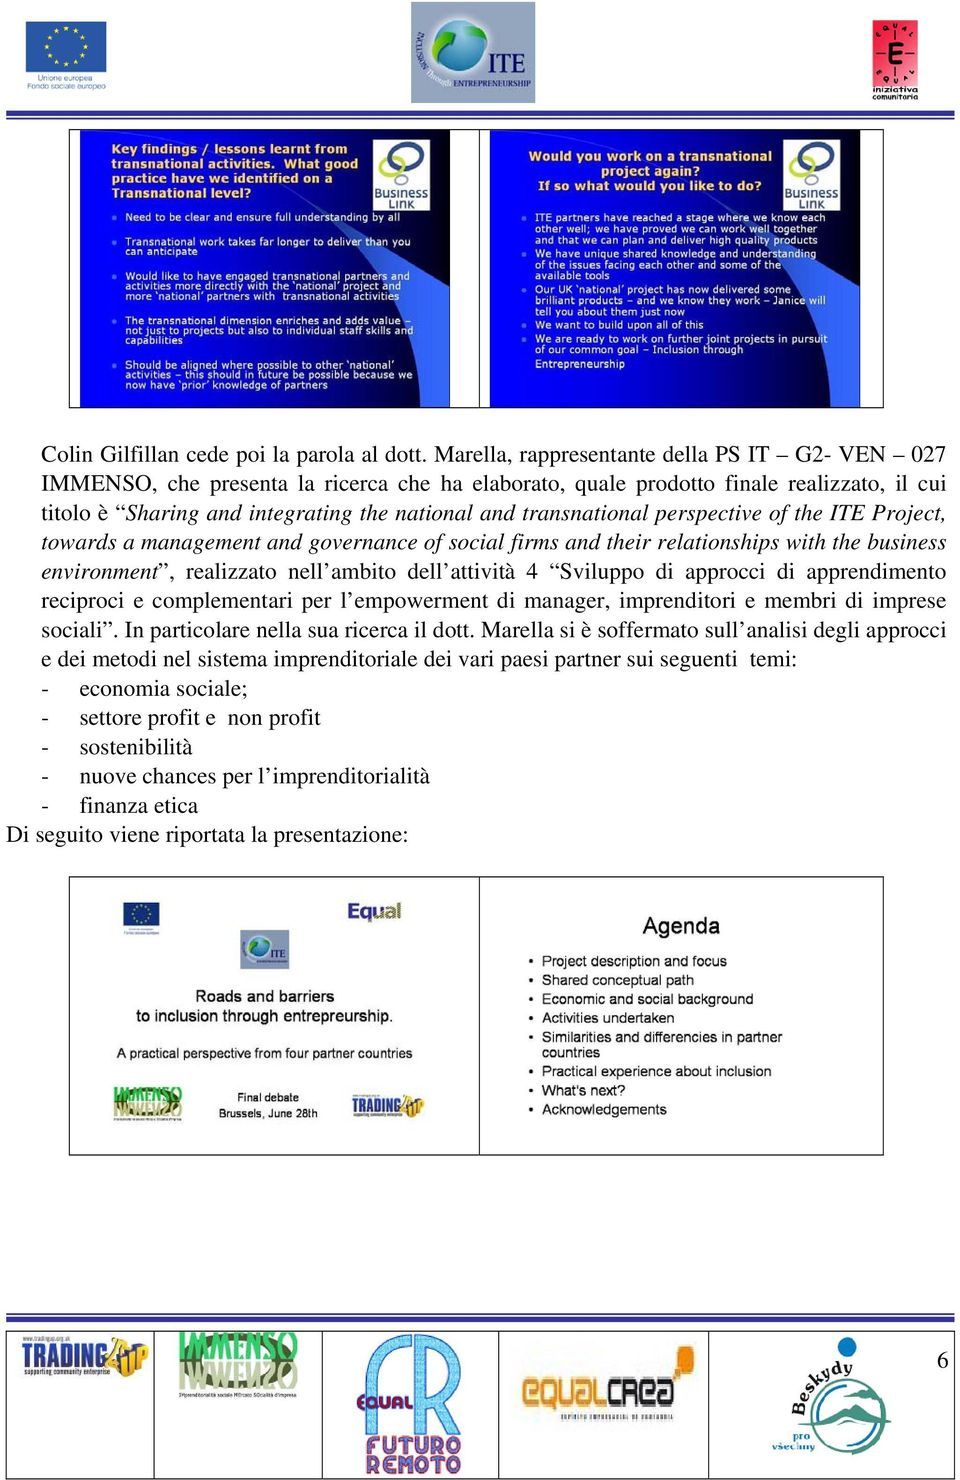 transnational perspective of the ITE Project, towards a management and governance of social firms and their relationships with the business environment, realizzato nell ambito dell attività 4